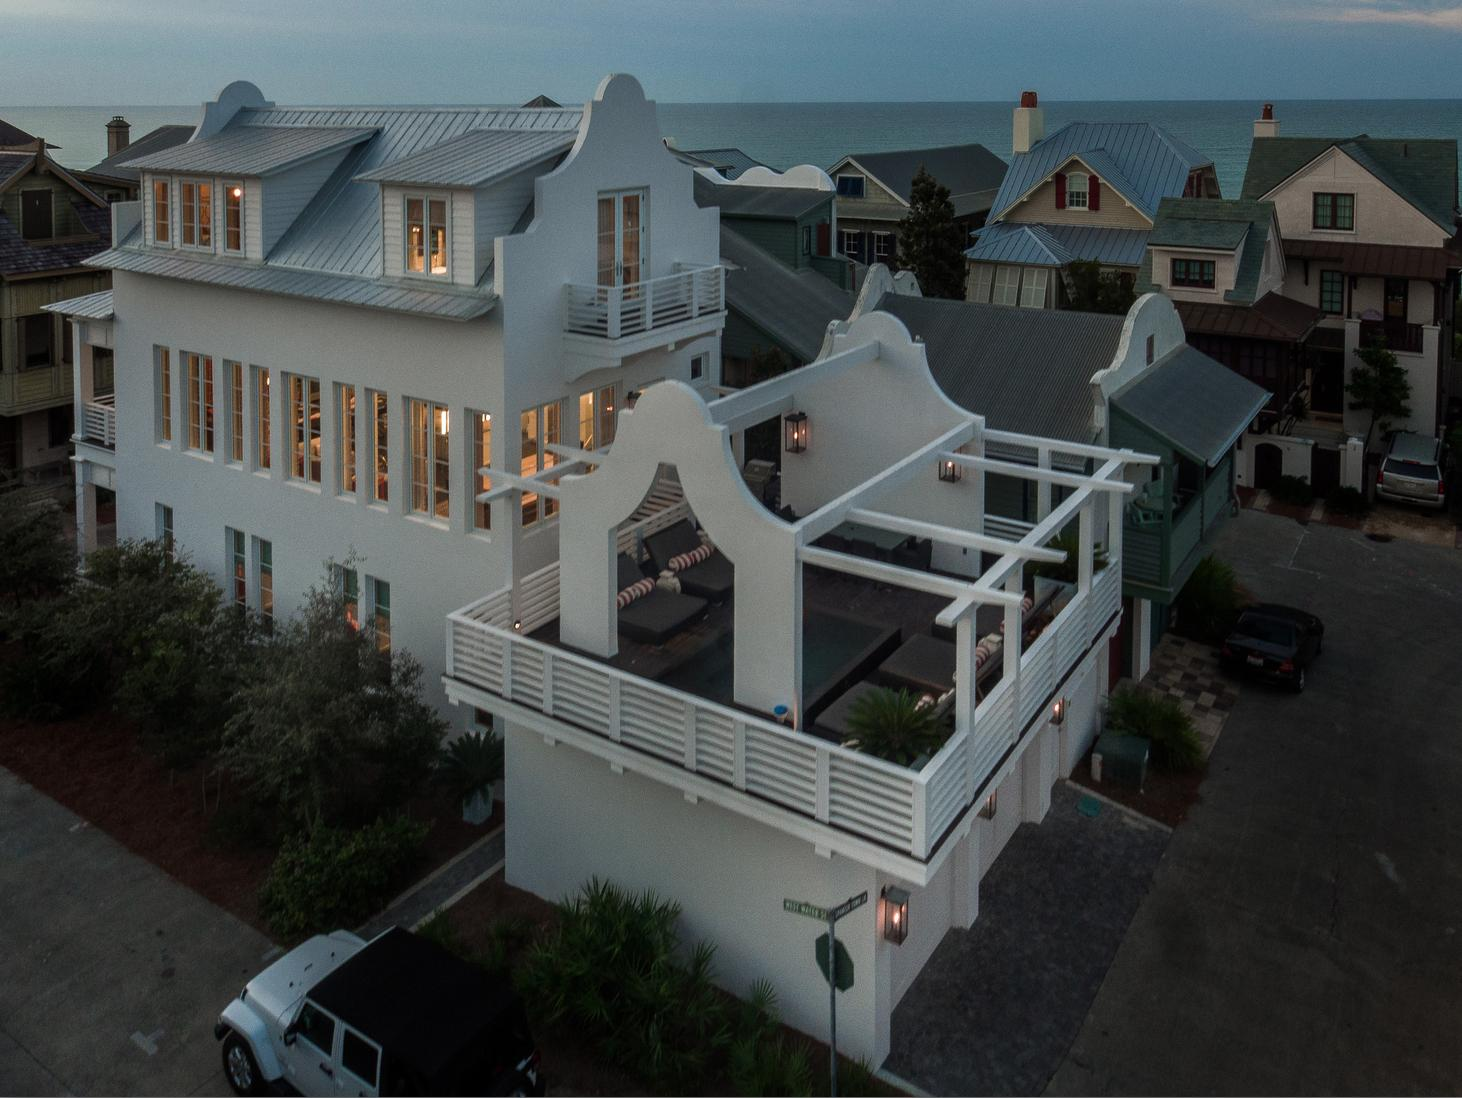 384 W WATER STREET, ROSEMARY BEACH, FL 32461